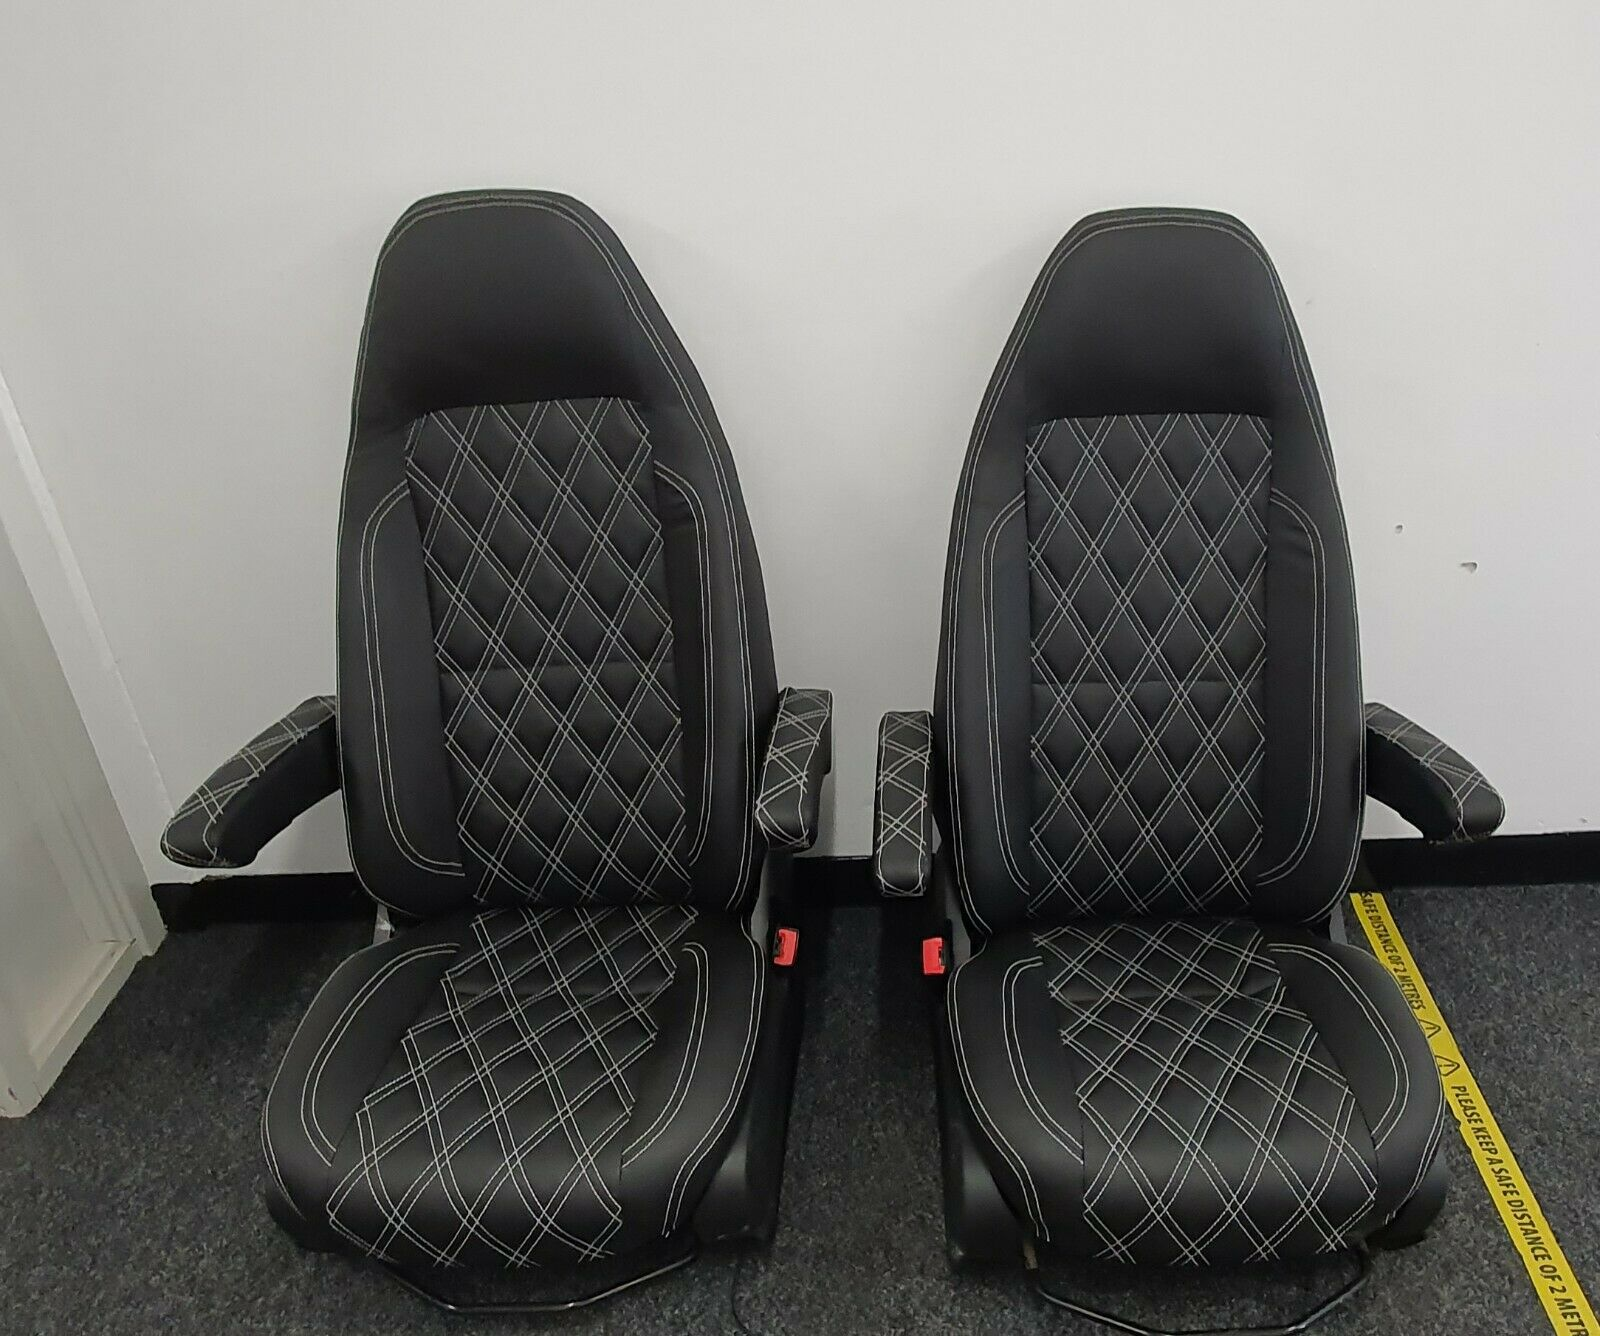 Modfied Mercedes Sprinter - VW Crafter Front Extra Comfort Driver And Passenger SEATS 2017.